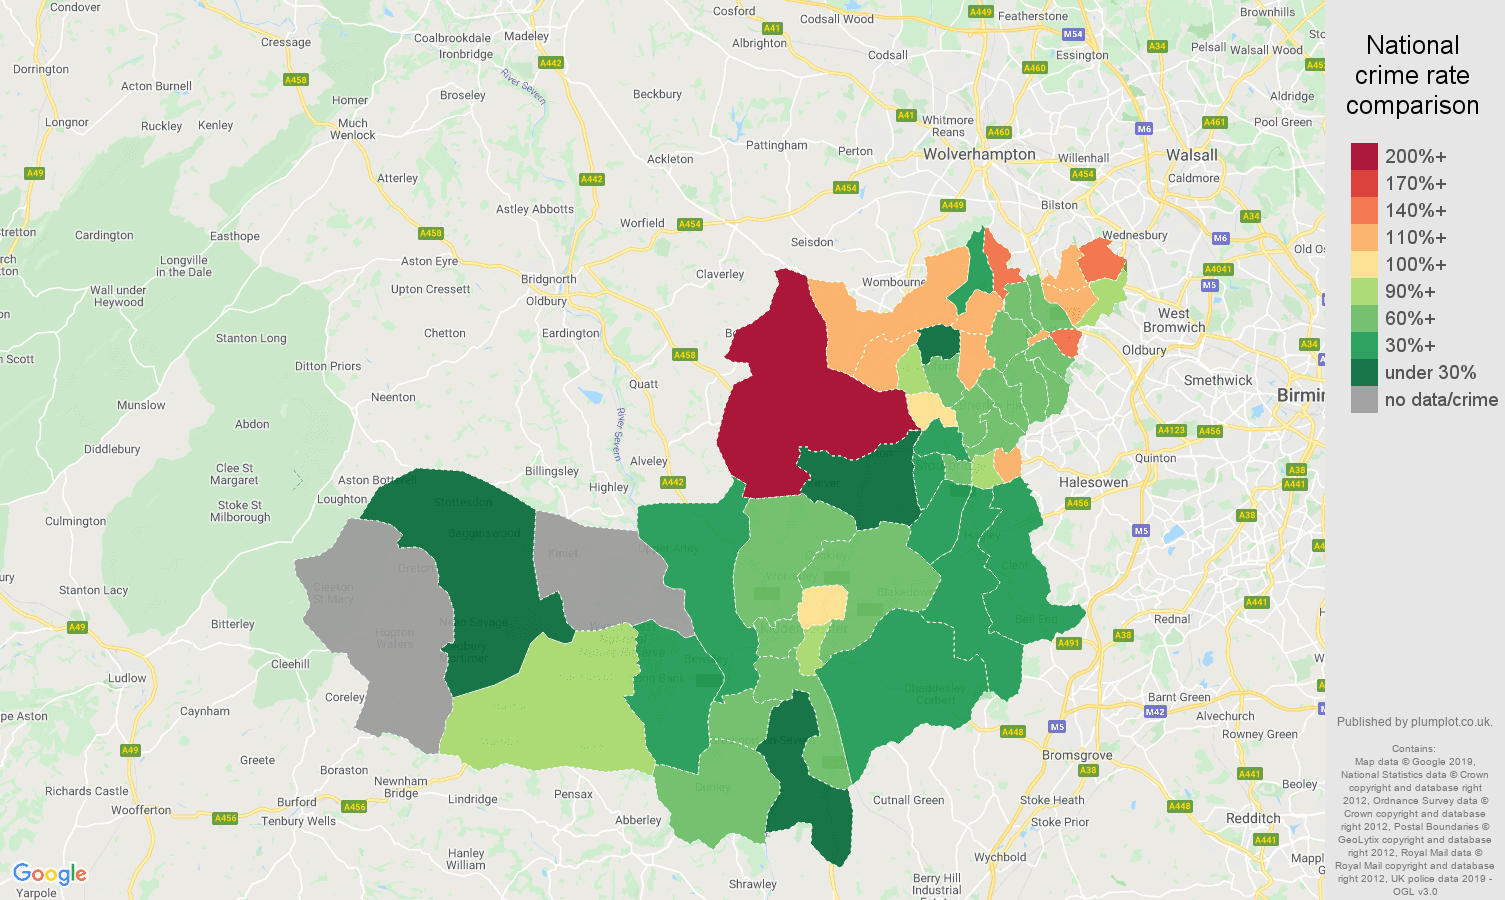 Dudley other crime rate comparison map